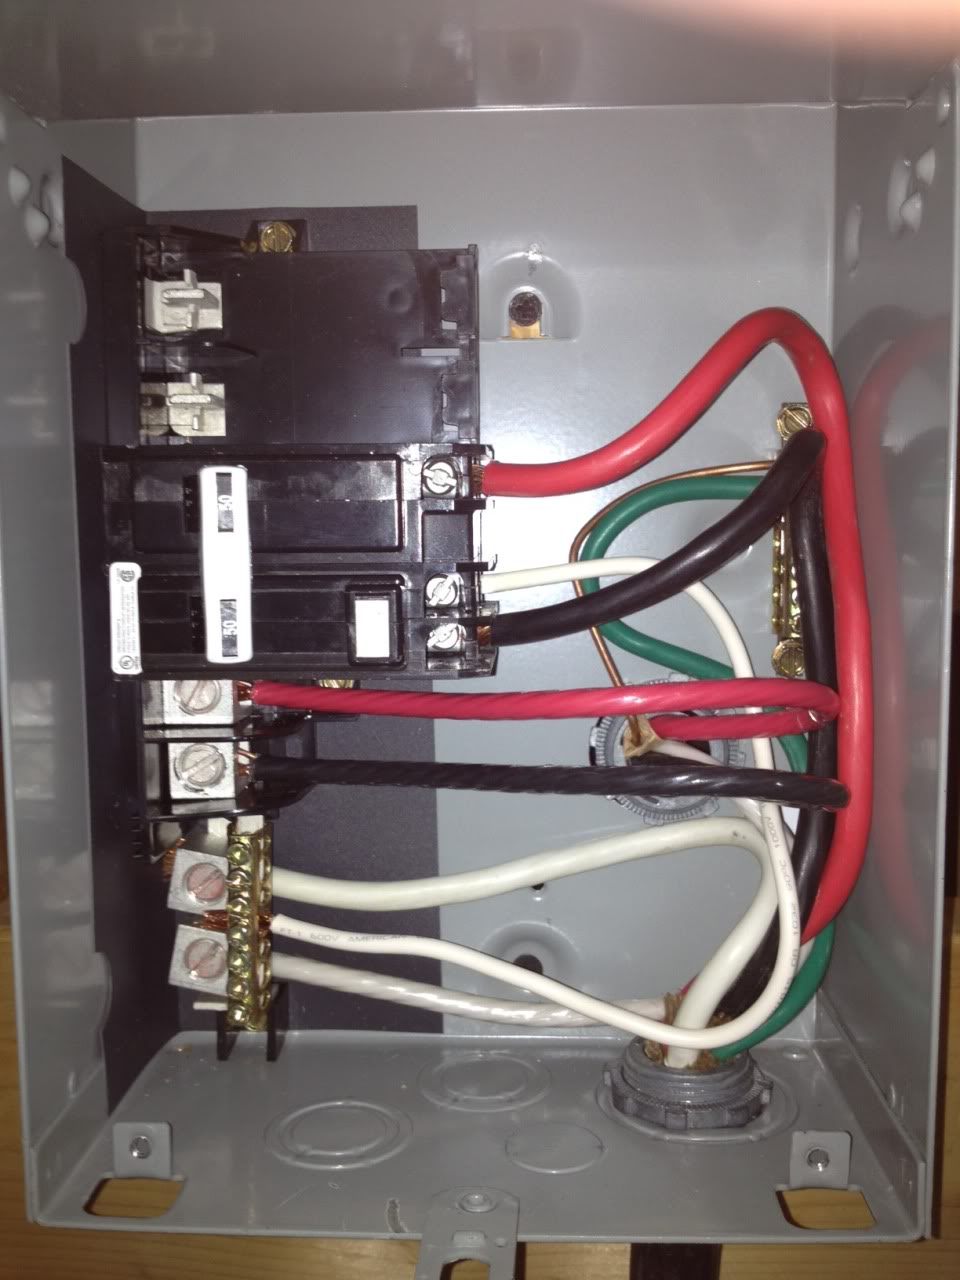 hight resolution of spa panel wiring diagram wiring diagram load how to wire a spa sub panel